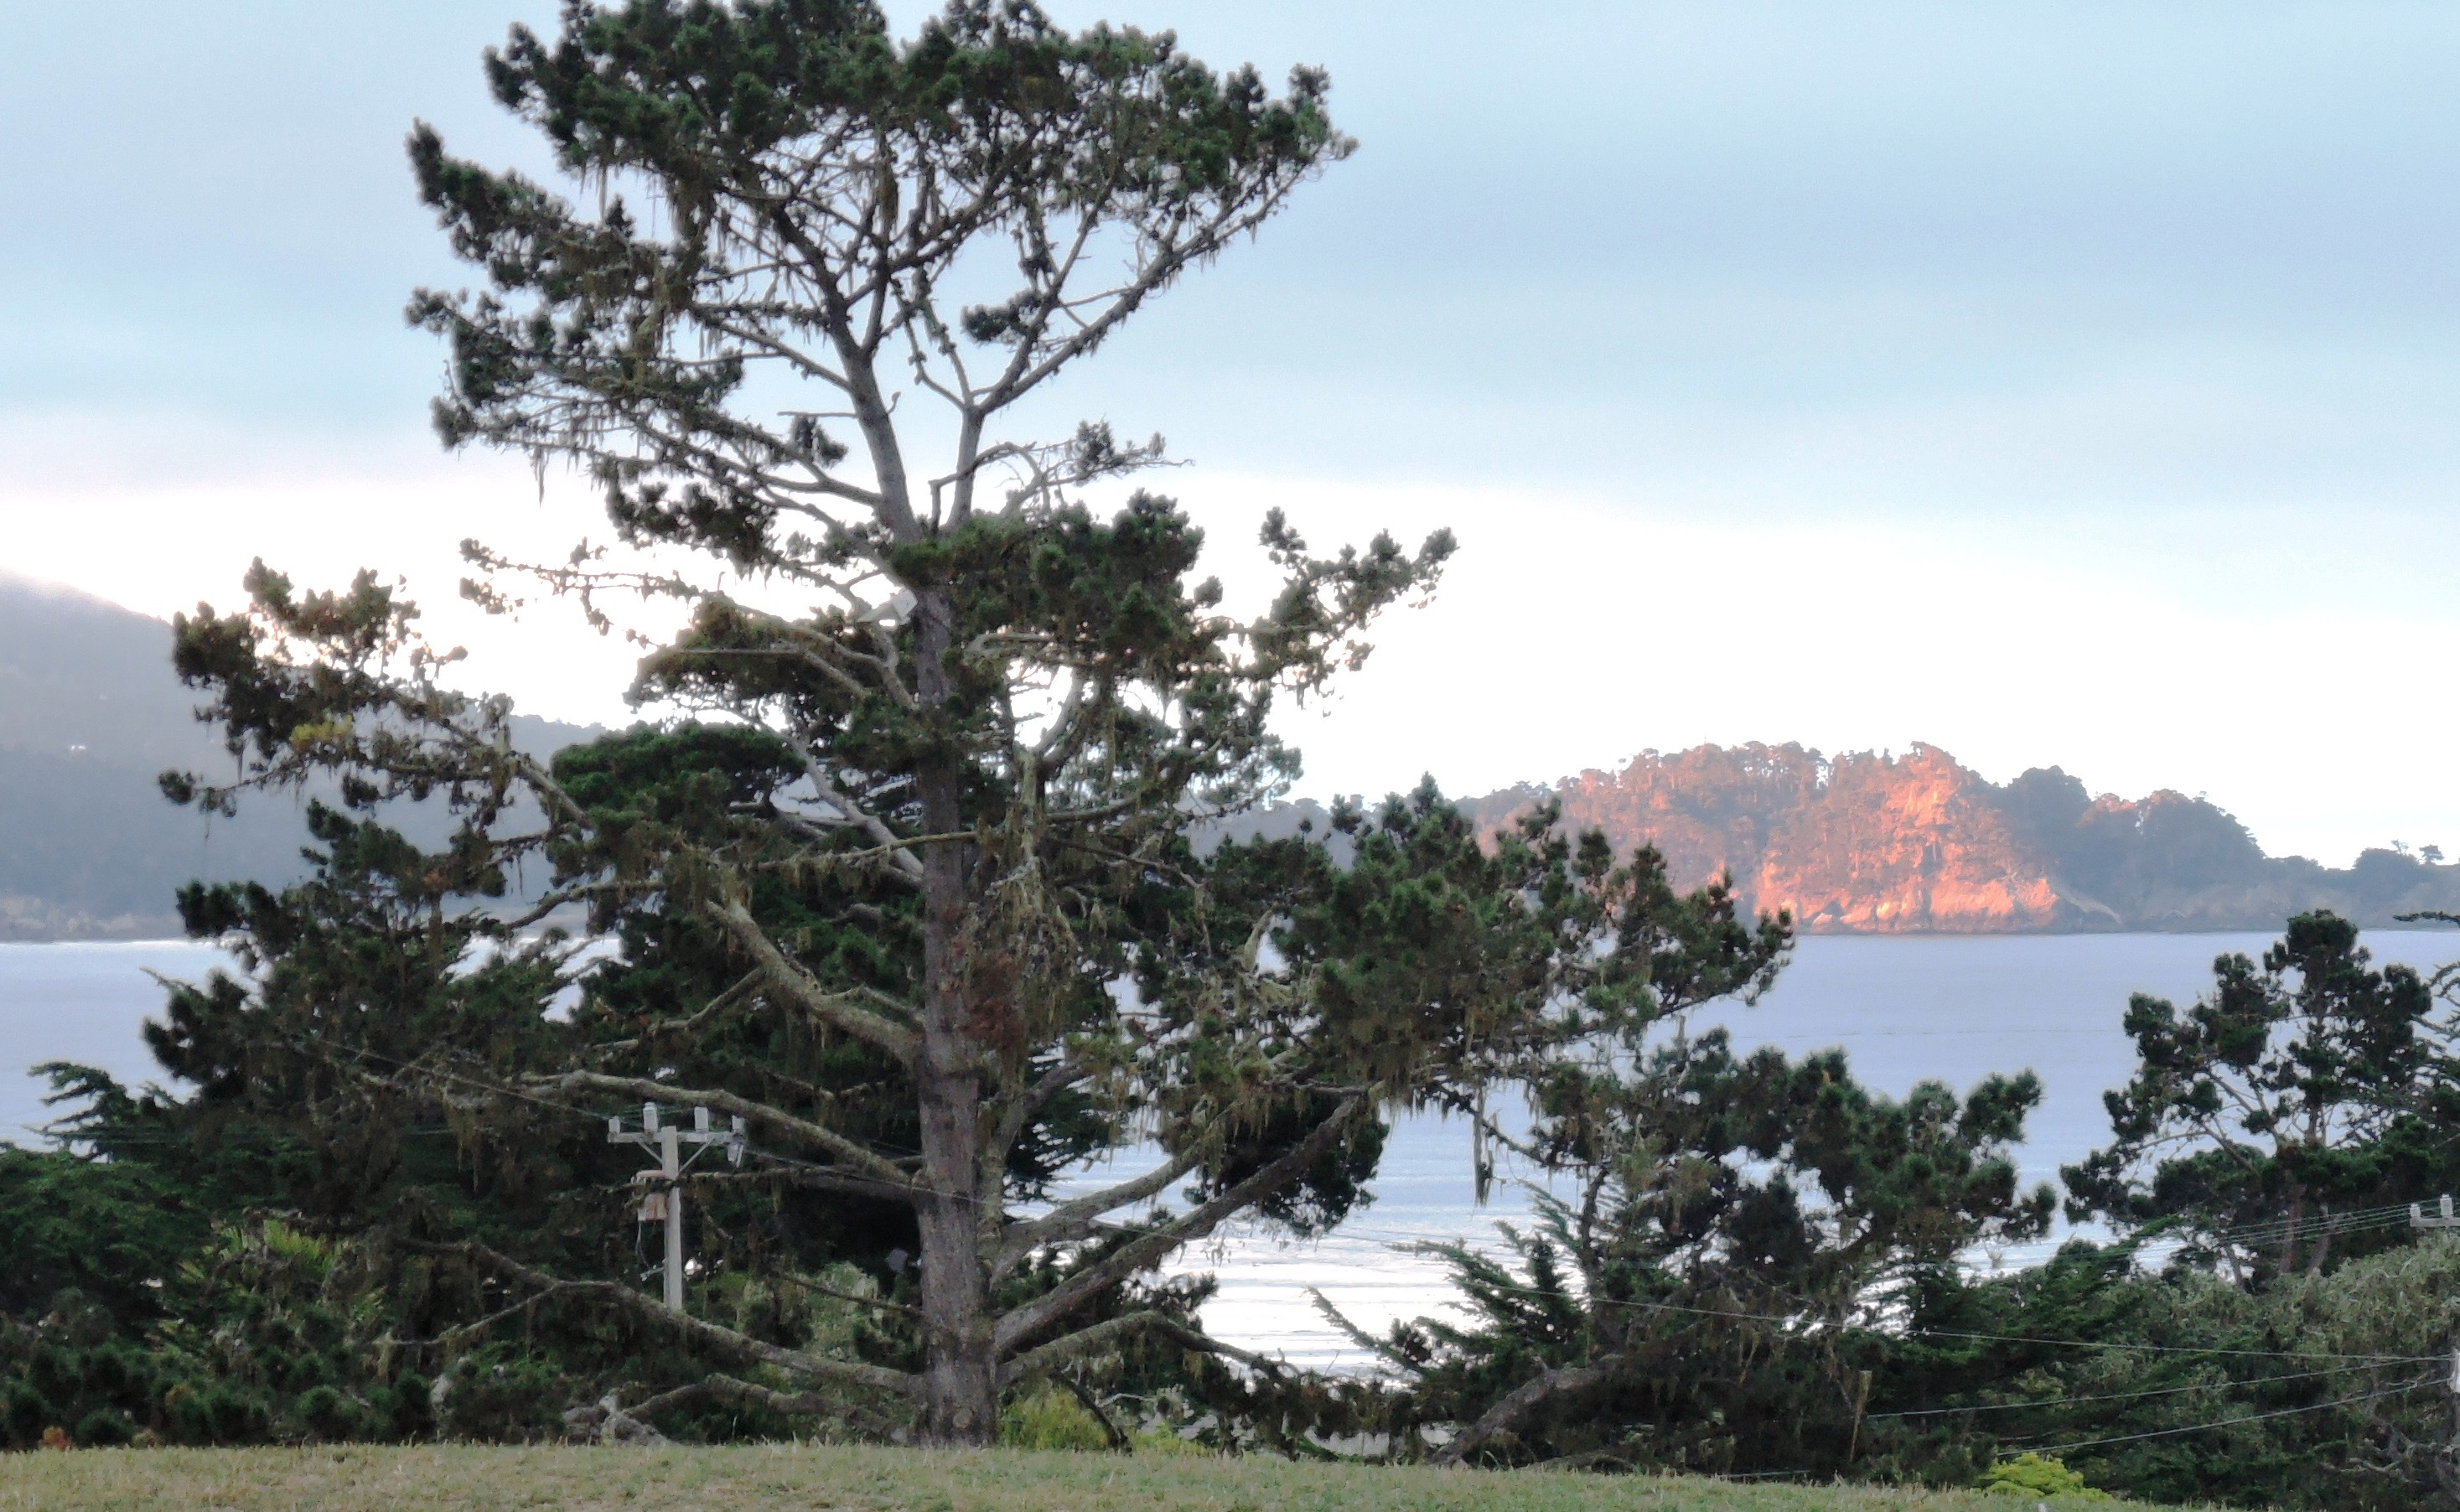 17-Mile Drive in Pebble Beach - tour d'elegance